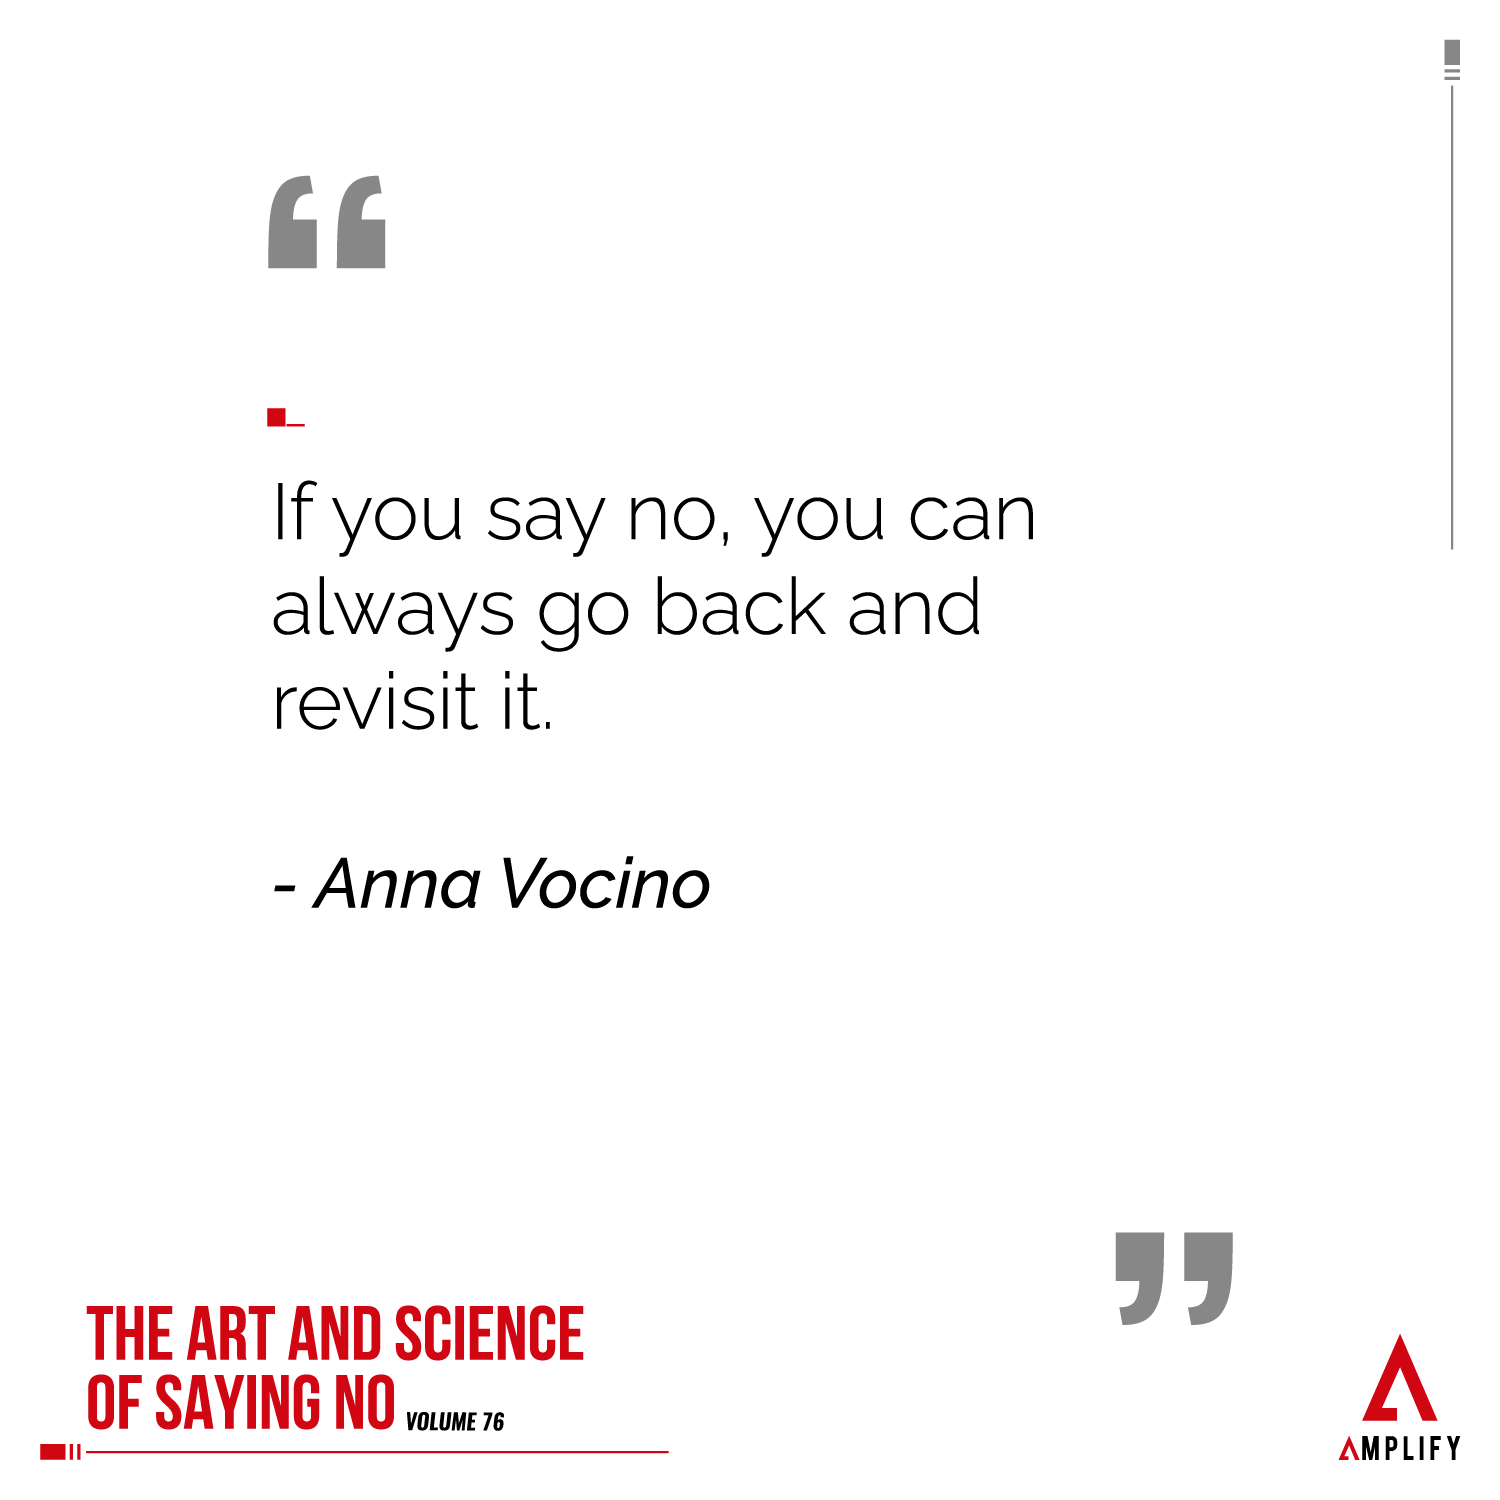 """decorative image with the quote """"If you say no, you can always go back and revisit it."""" by Anna Vocino"""